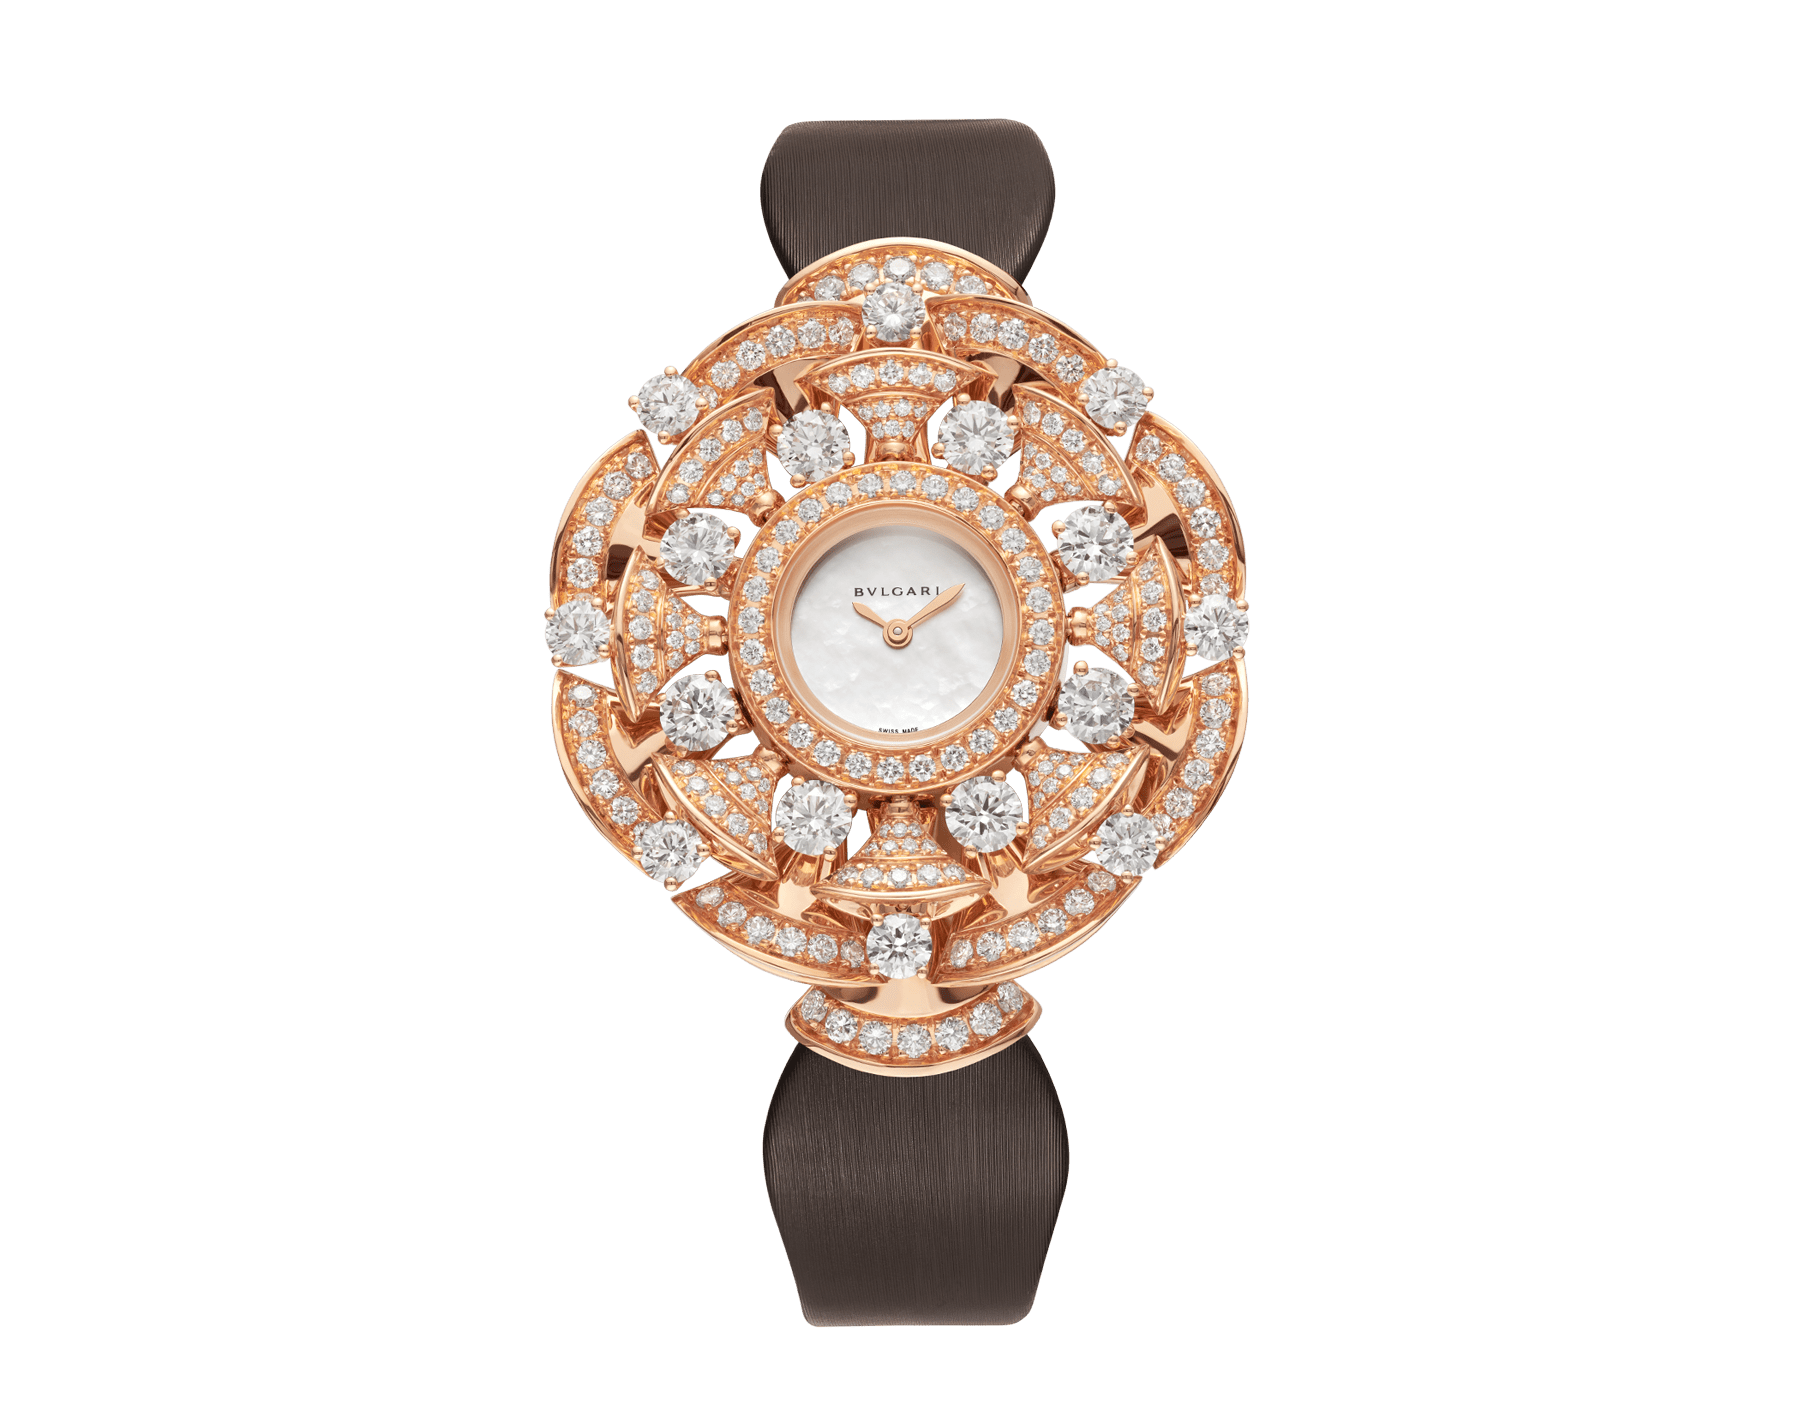 DVAS' DREAM watch with 18 kt rose gold case set with brilliant-cut diamonds, white mother-of-pearl dial and brown satin bracelet 102546 image 1